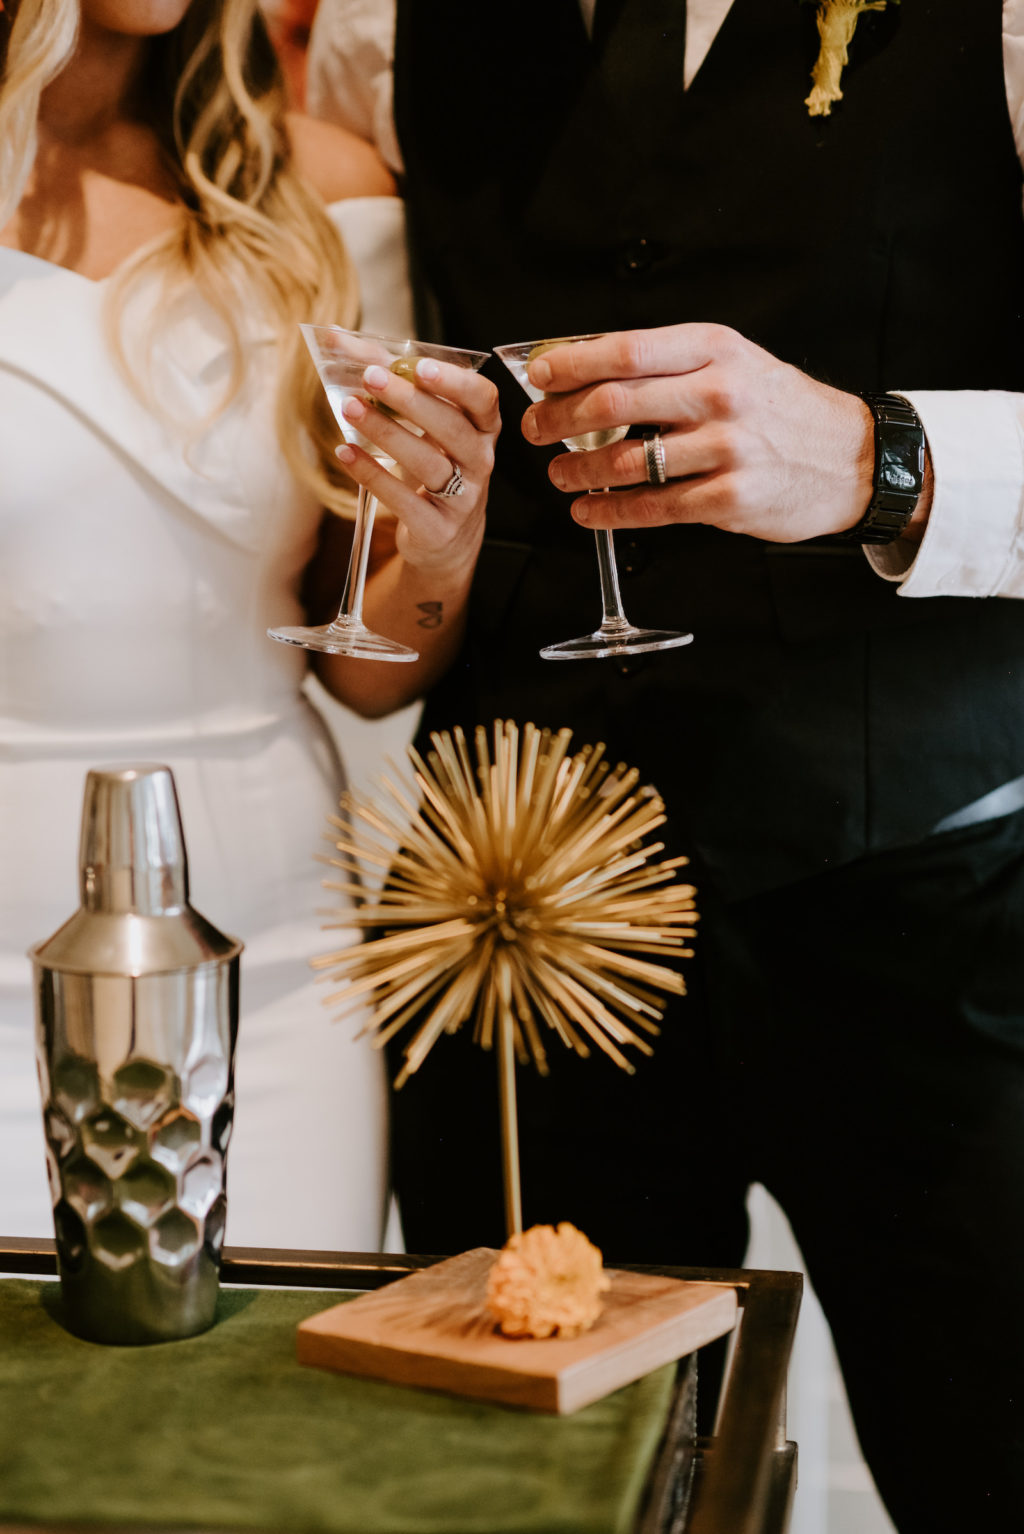 Retro Bride and Groom Cheering with Martini Cocktail at Bar Cart